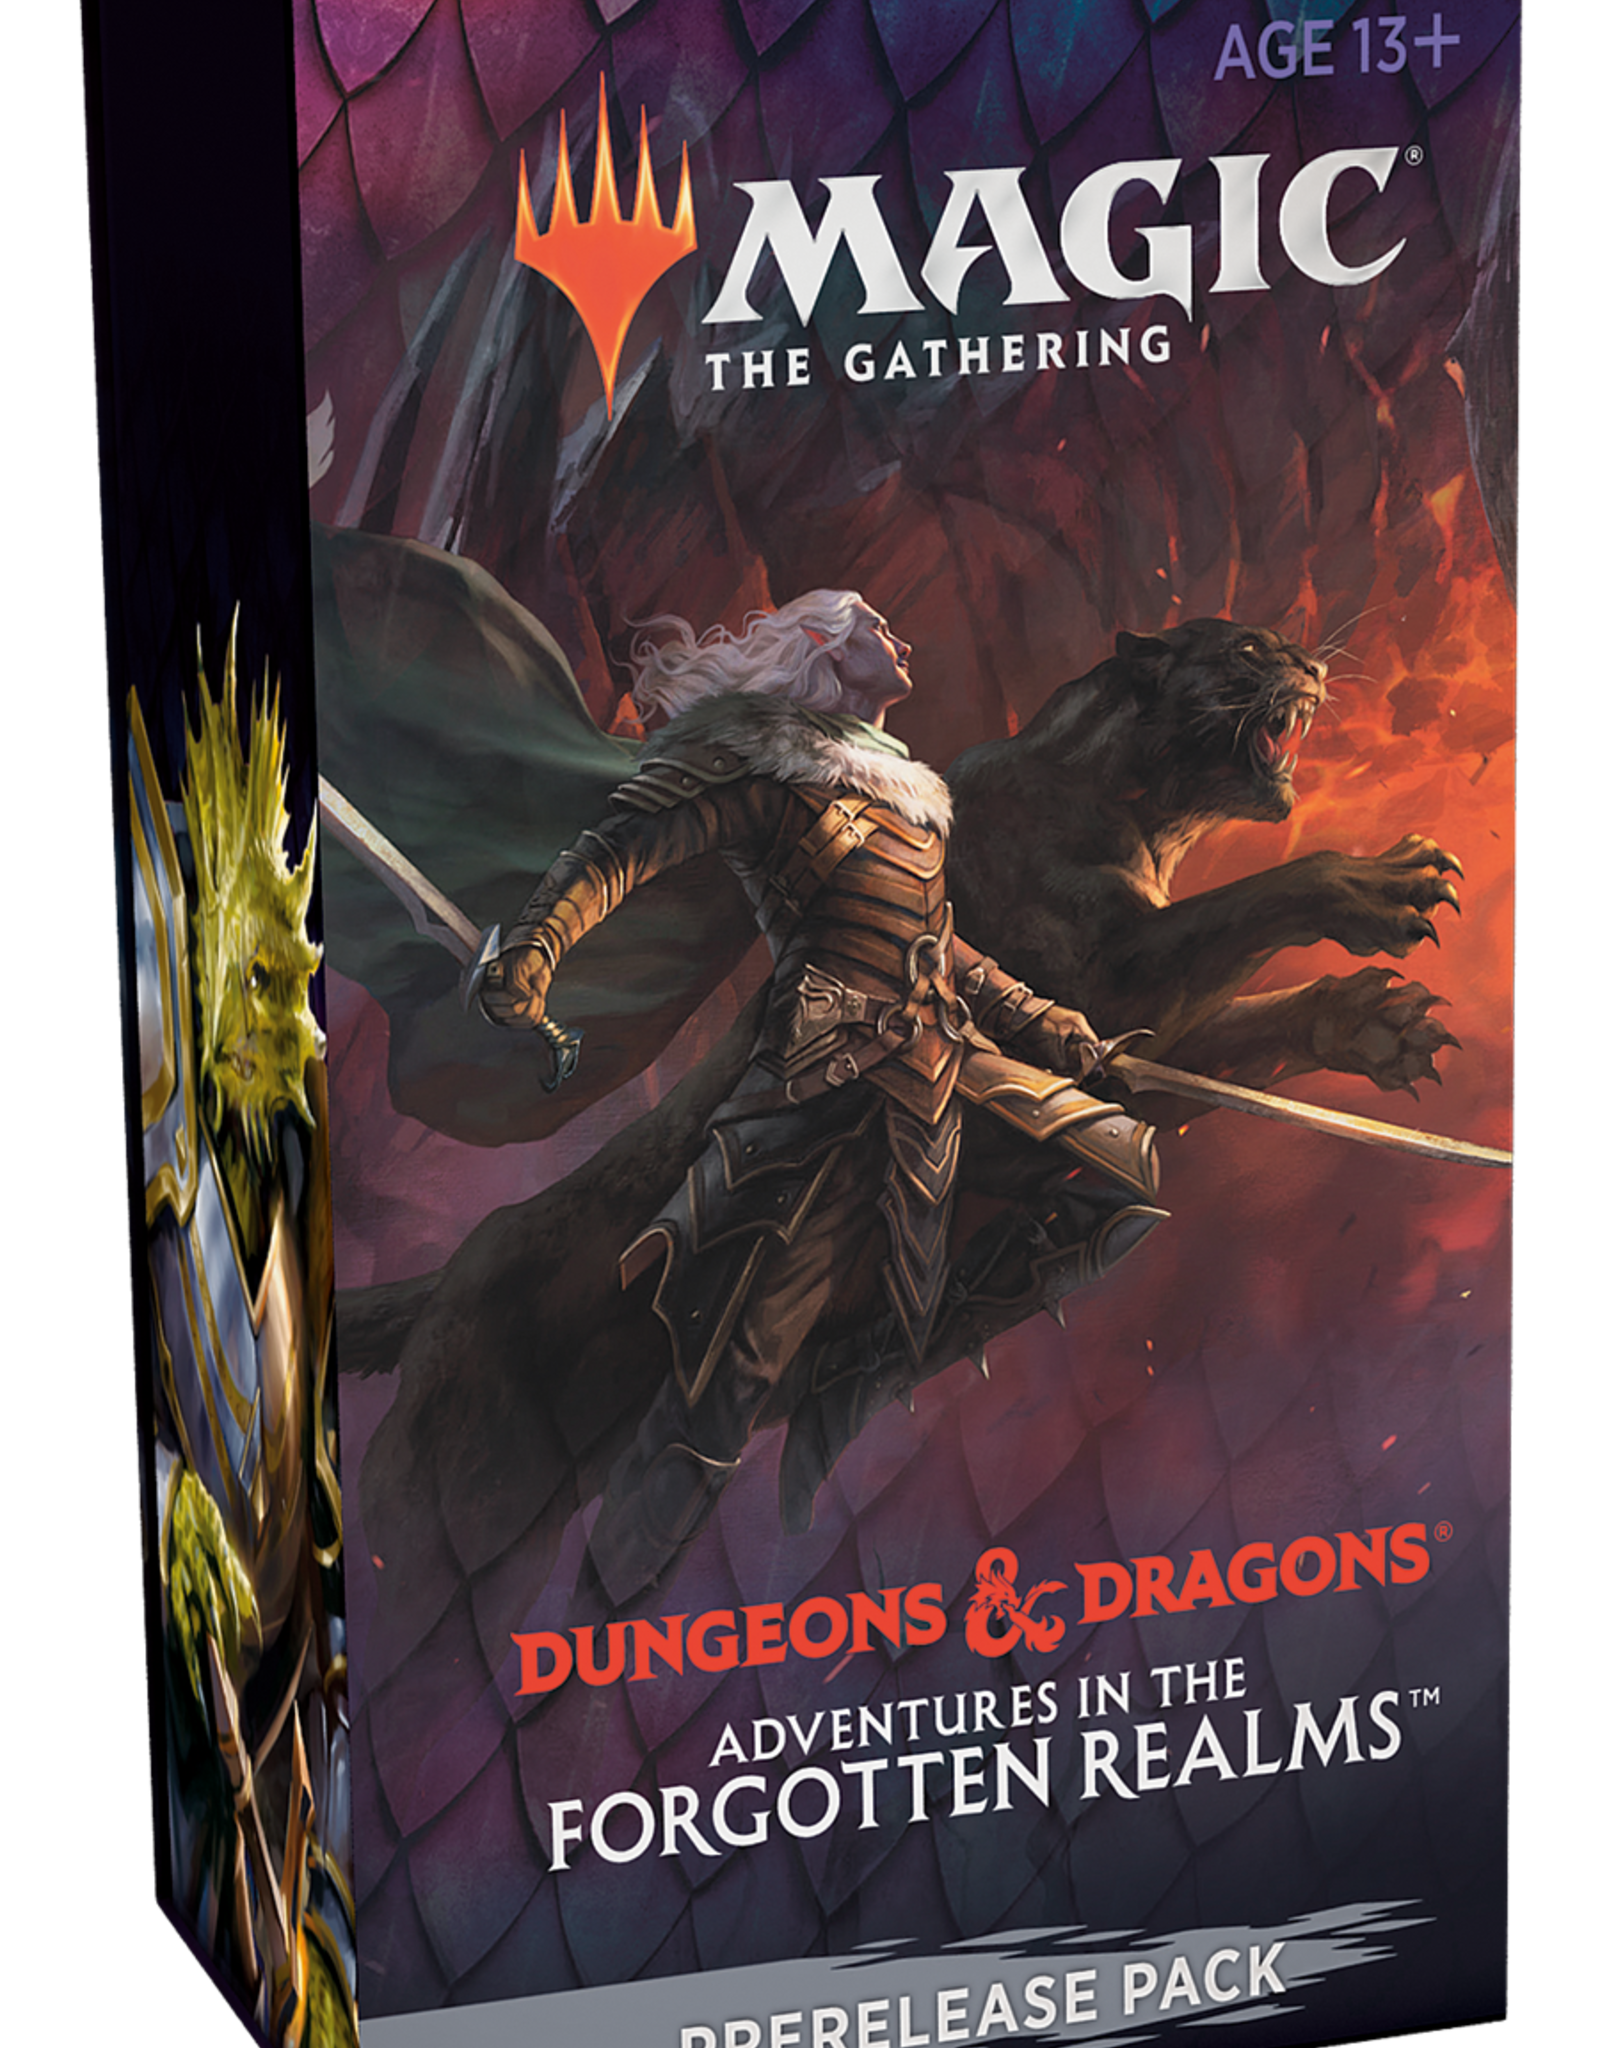 MtG - Adventures in the Forgotten Realms Adventures in the Forgotten Realms Prerelease Pack